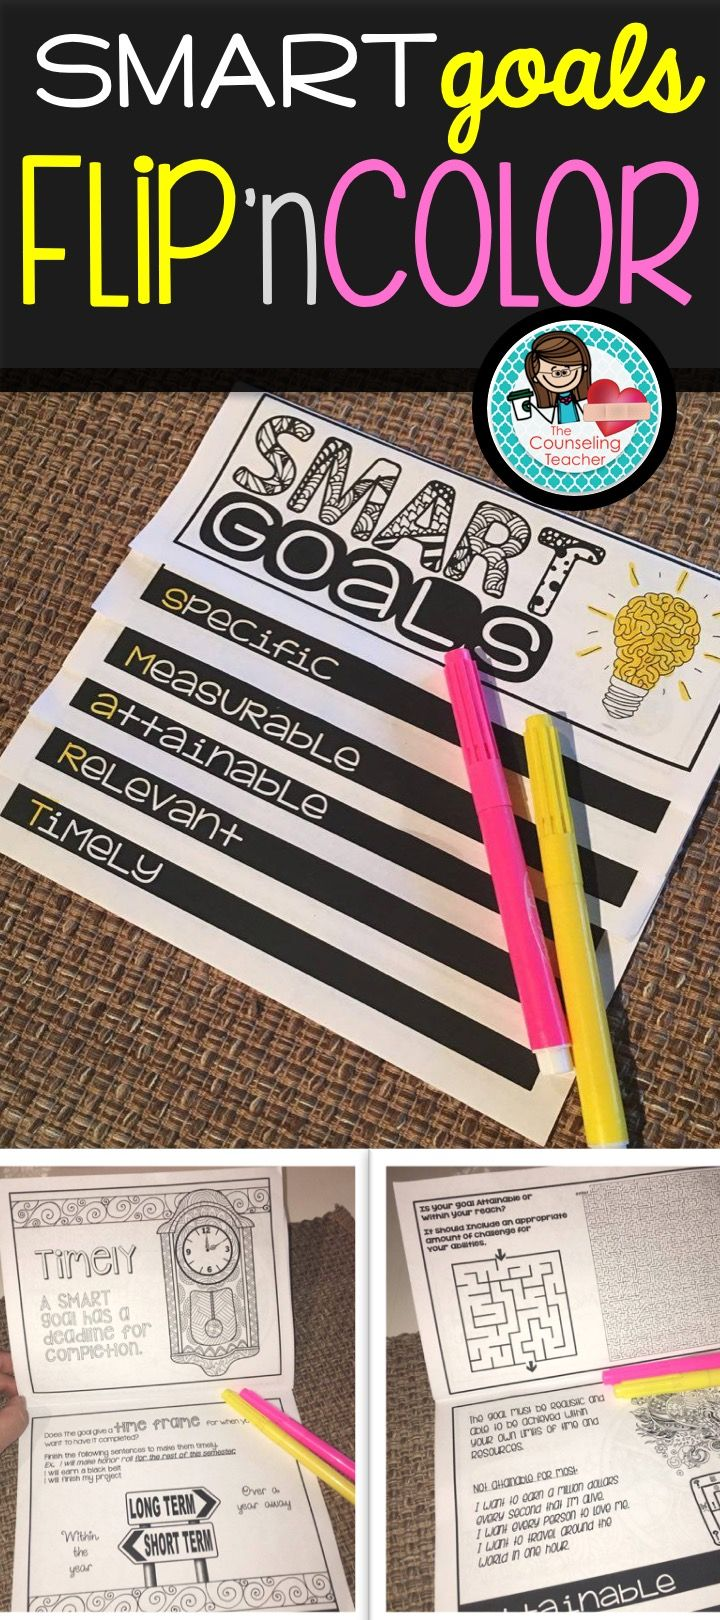 Goal setting is an important life skill. This flipbook engages students while teaching how to develop goals that are SMART. (Specific, measurable, attainable, relevant, timely)